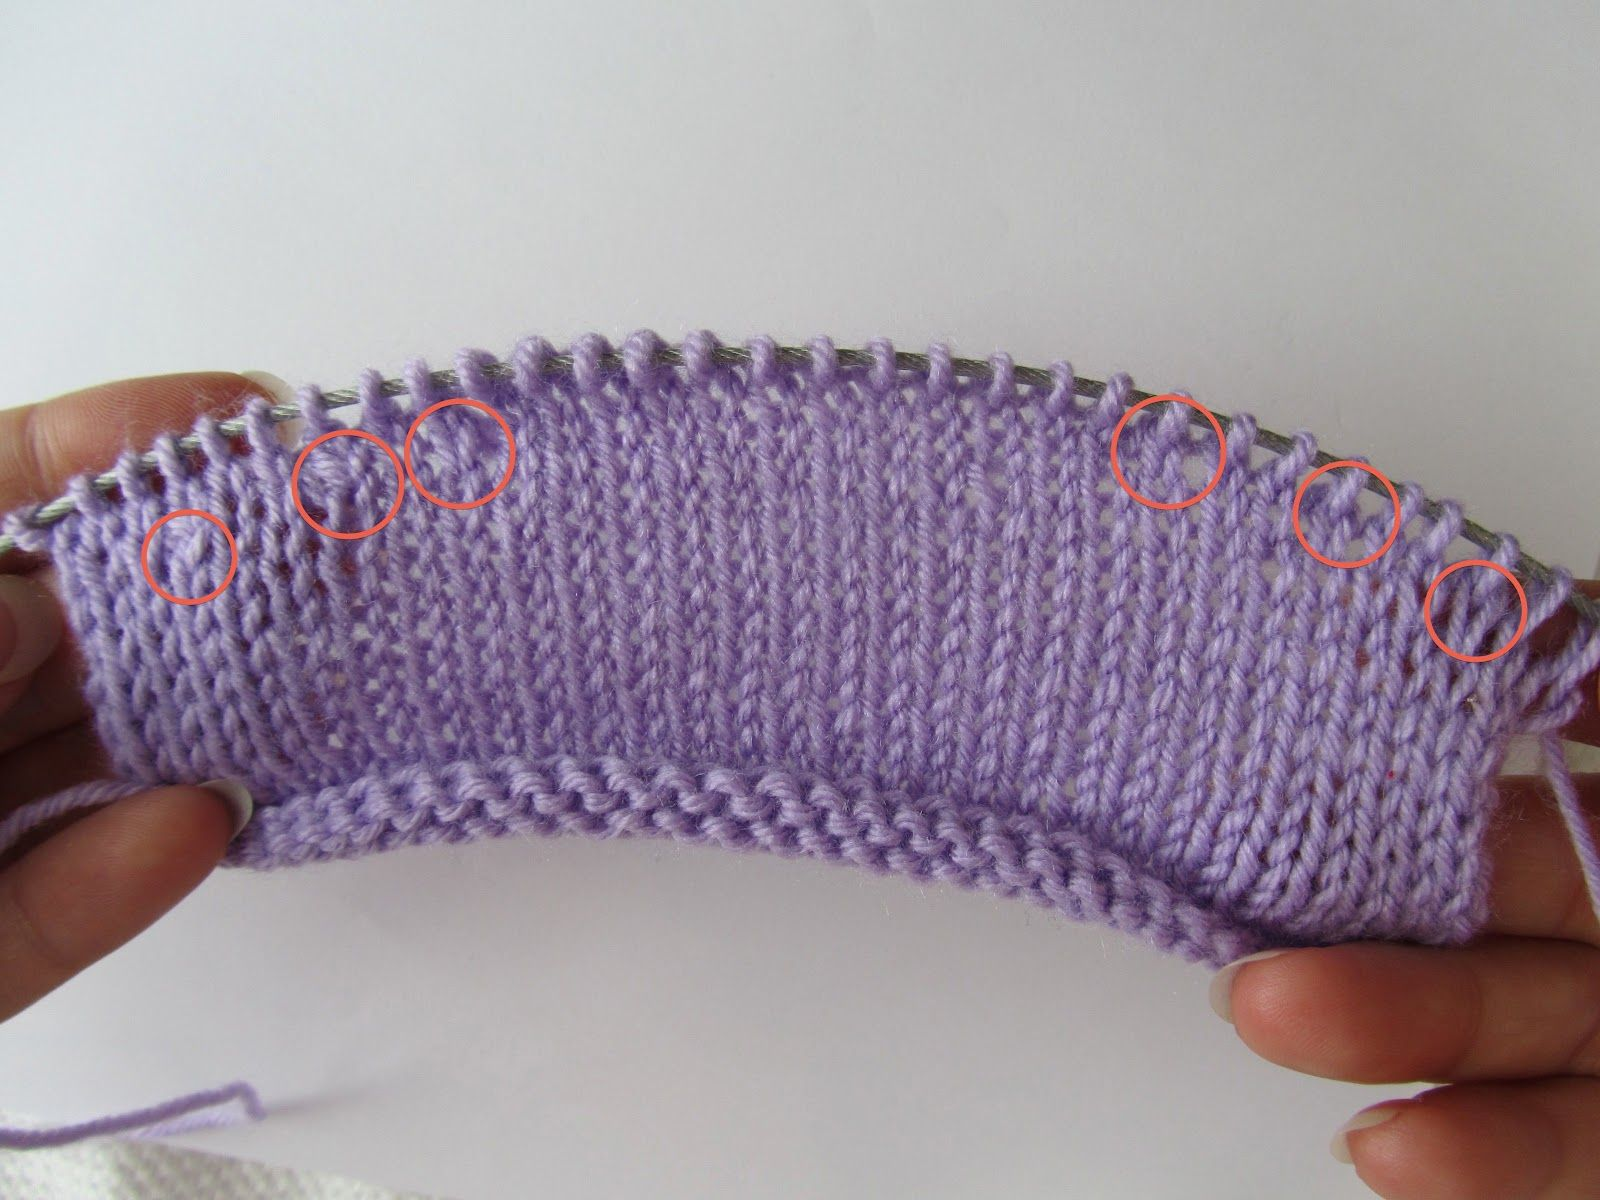 Knitting Wrap And Turn Tutorial : Short rows tutorial part wrap and turn breien